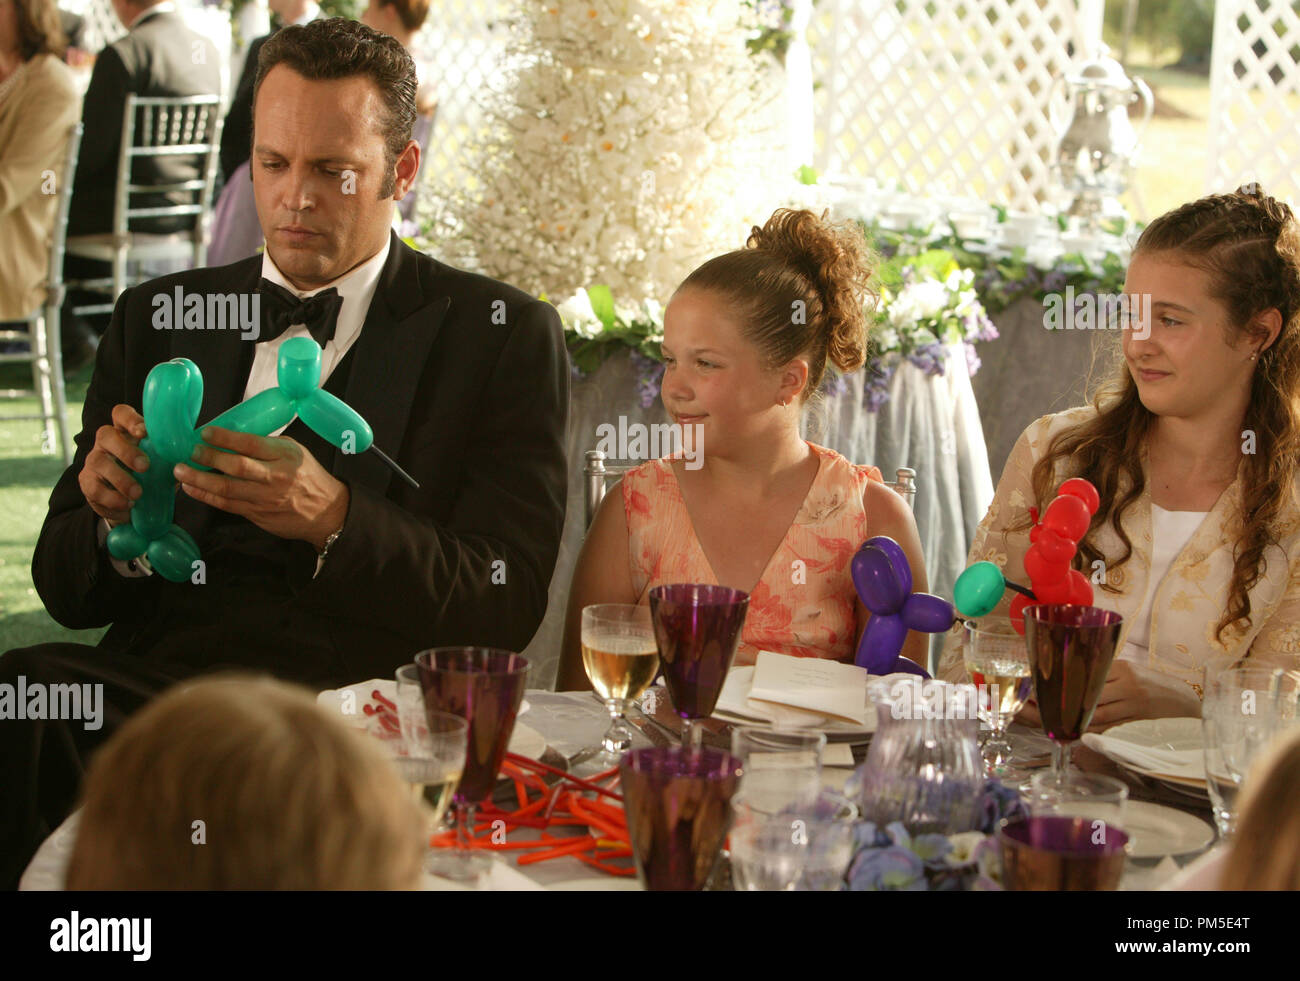 Film Still / Publicity Stills from 'Wedding Crashers'  Vince Vaughn  © 2005 New Line Cinema  Photo Credit: Richard Cartwright  File Reference # 30736739THA  For Editorial Use Only -  All Rights Reserved - Stock Image